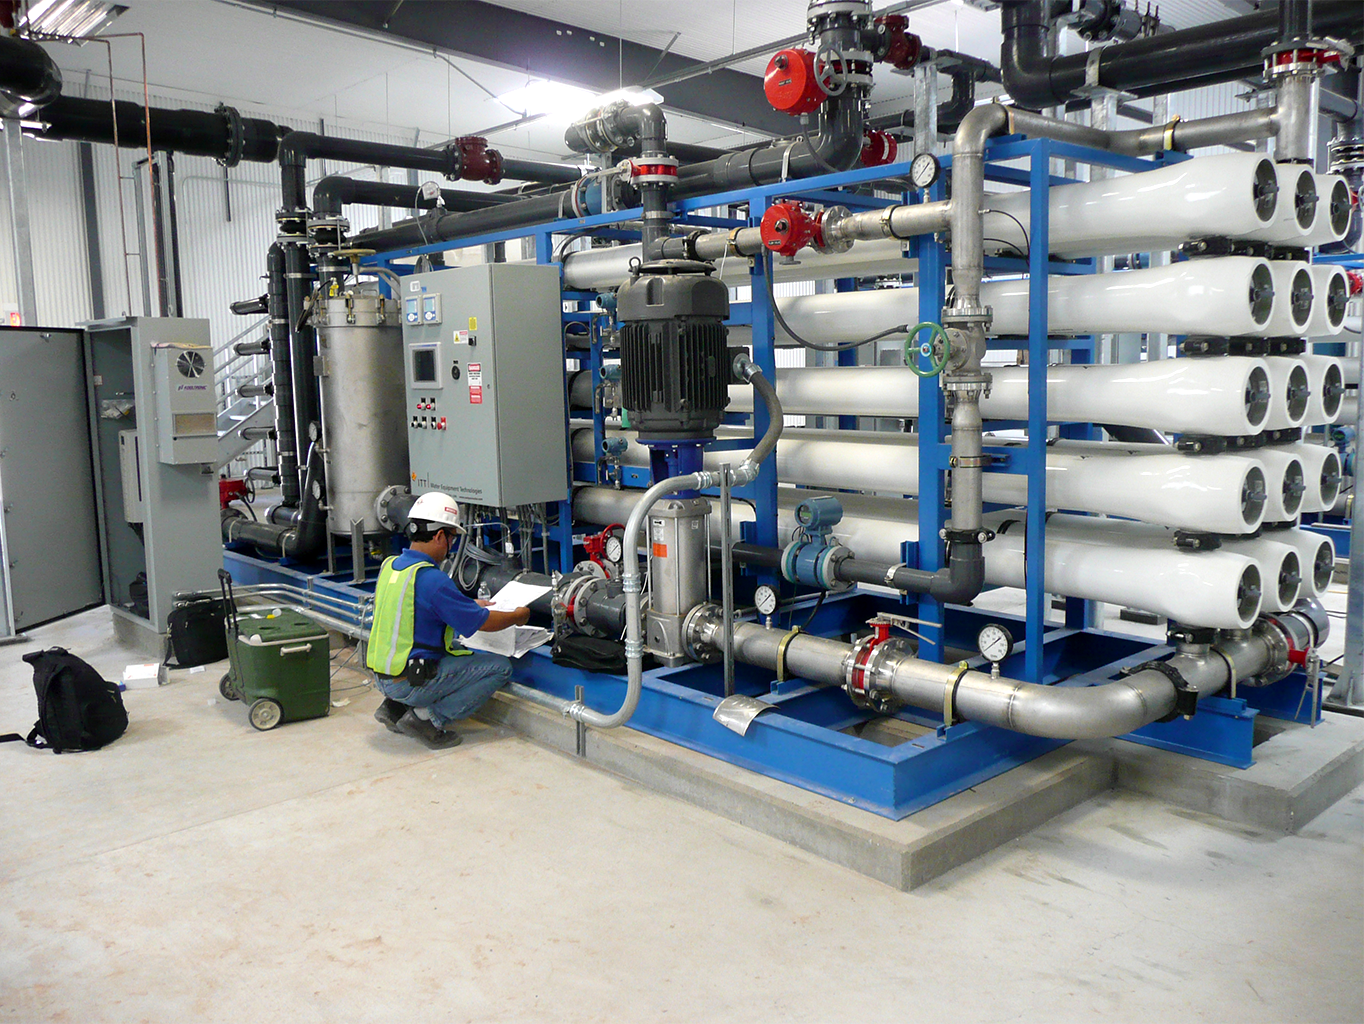 Image showing a large Desalination RO filtration system